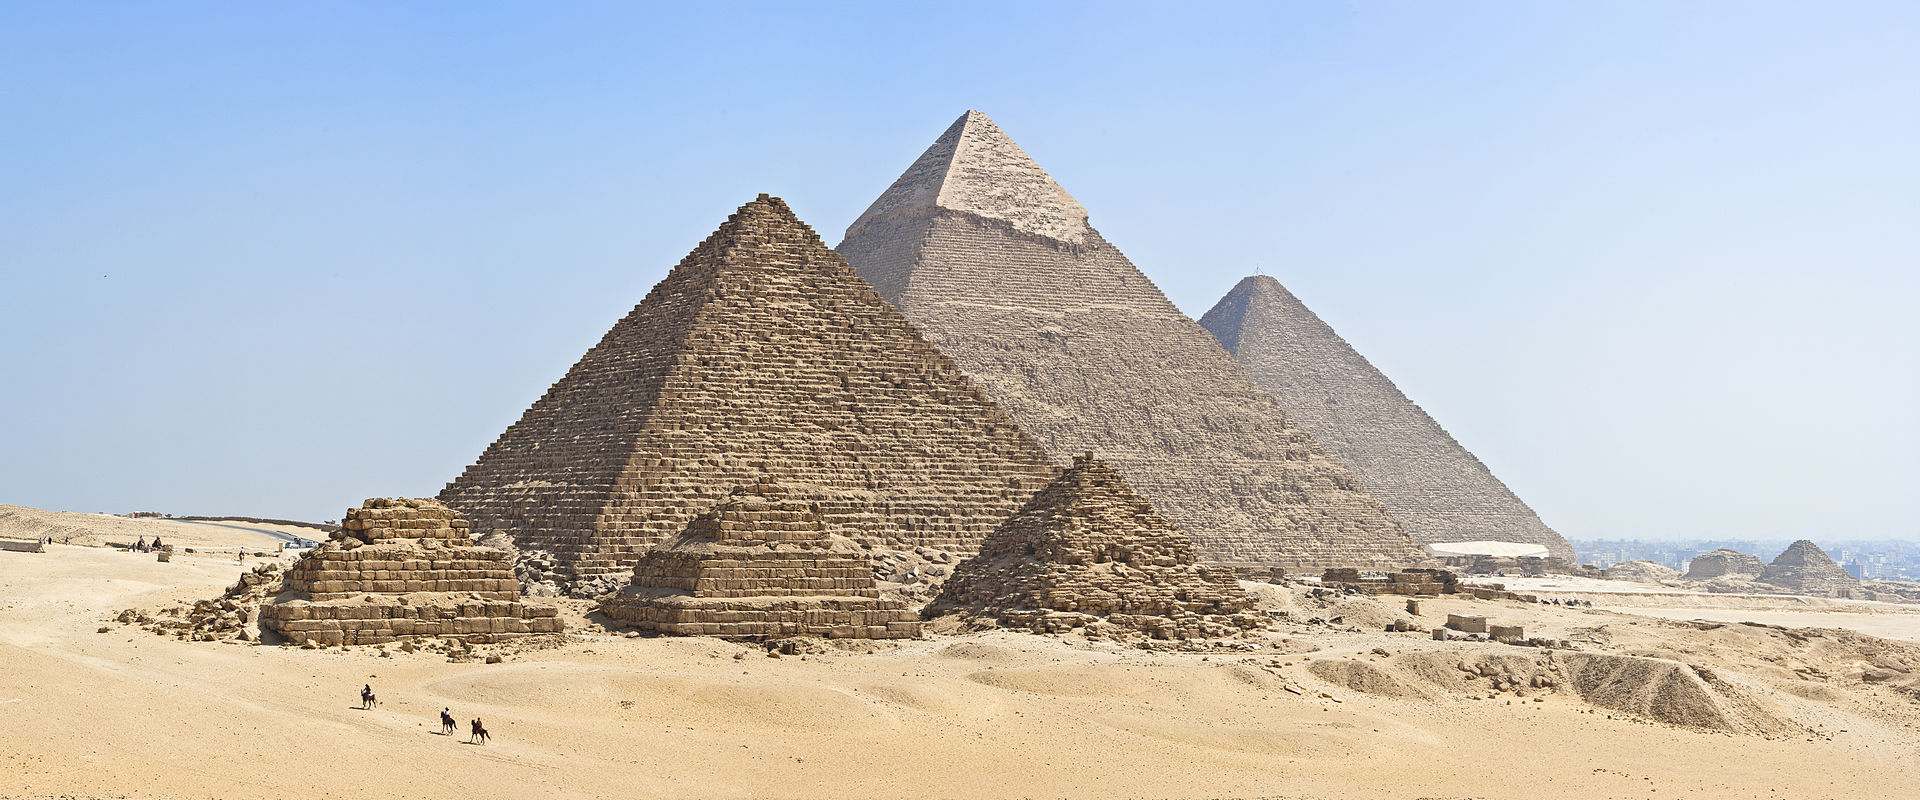 Pyramids of the Giza Necropolis.jpg